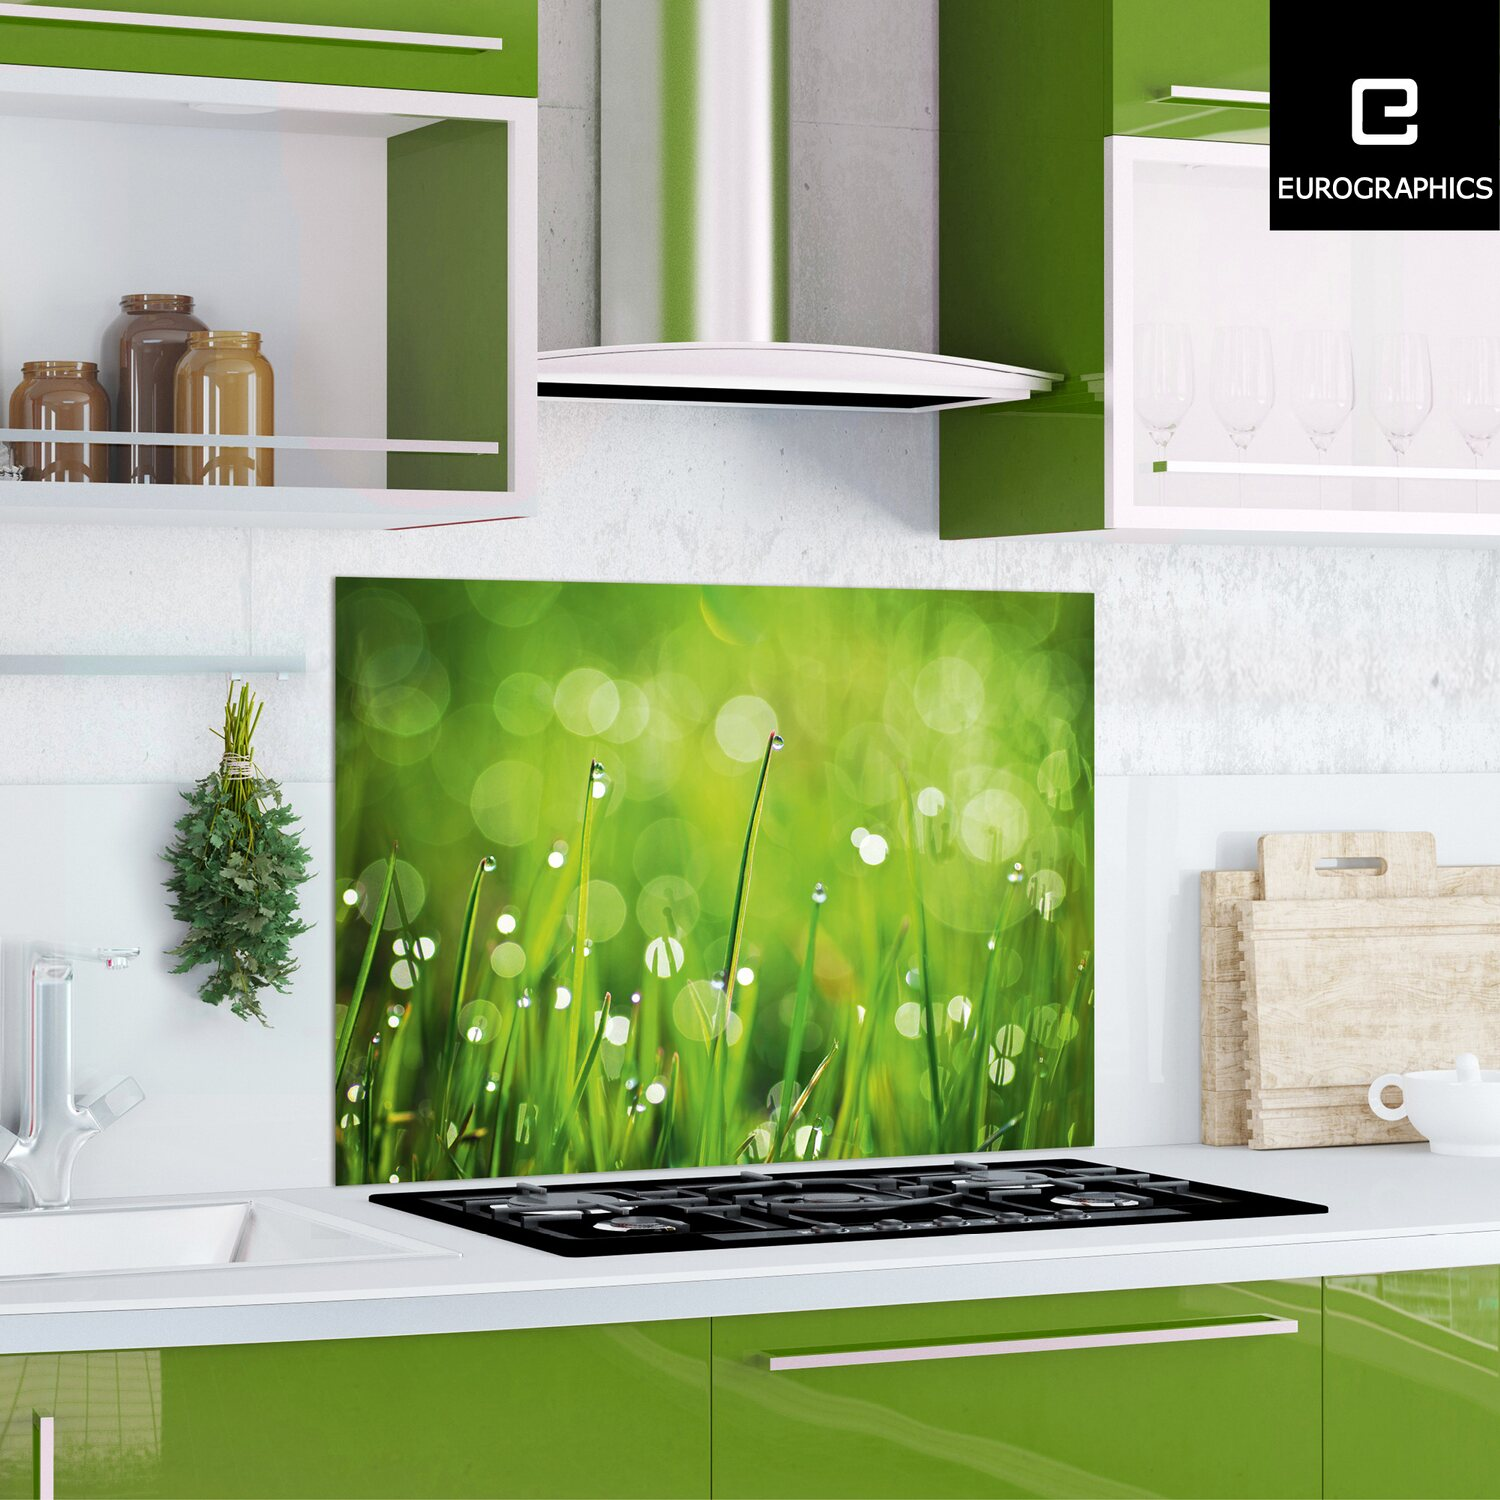 kitchen glas spritzschutz green morning ii 65cm x 90 cm kaufen bei obi. Black Bedroom Furniture Sets. Home Design Ideas